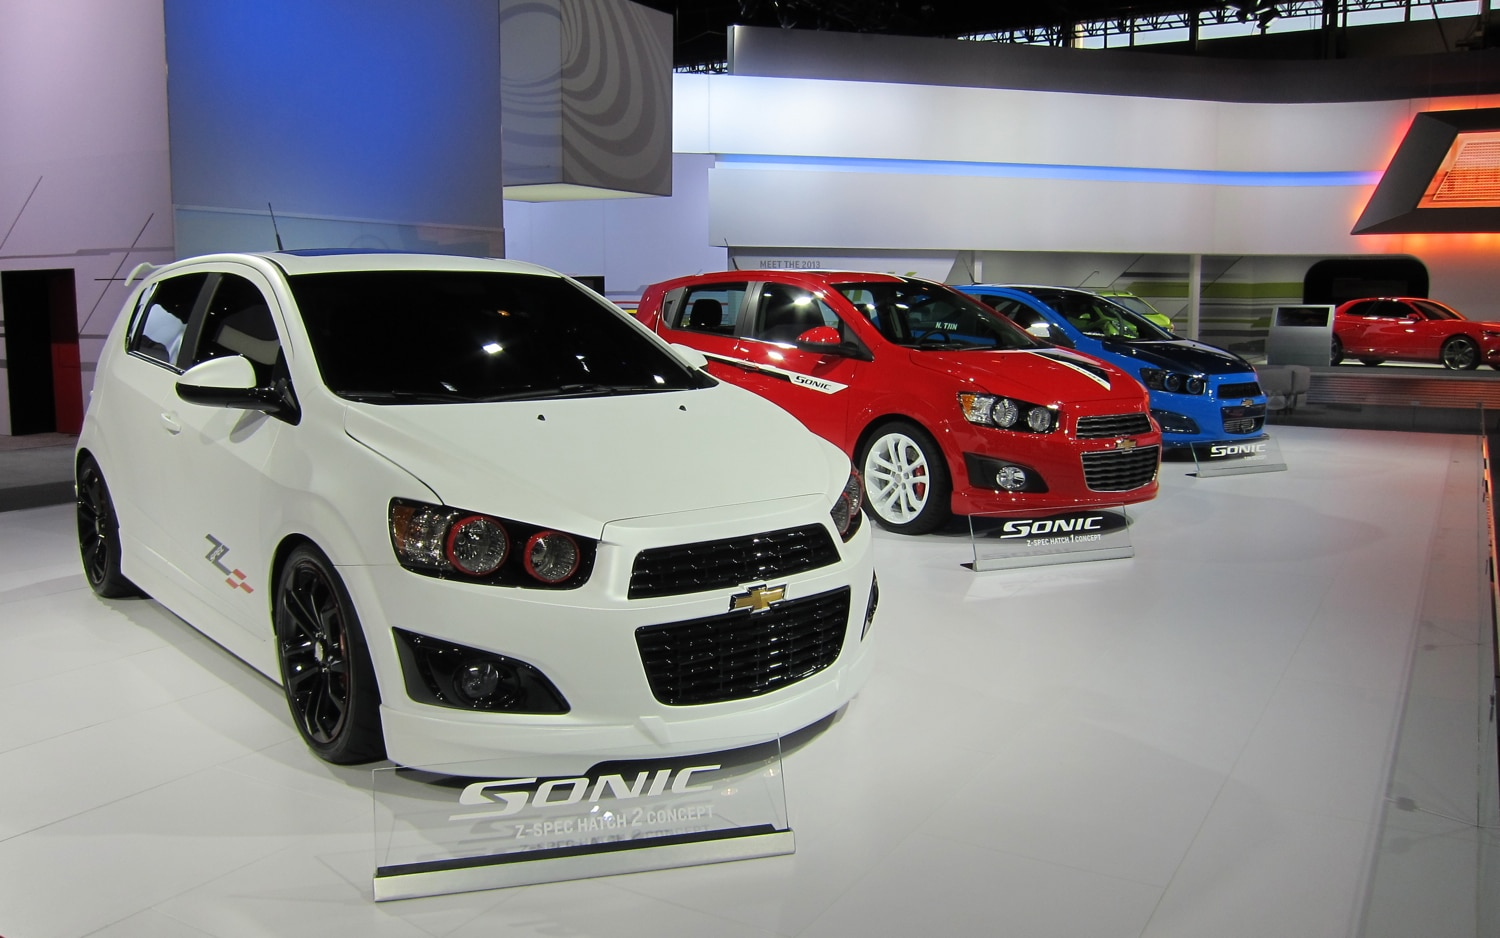 Chevrolet Sonic Concepts1